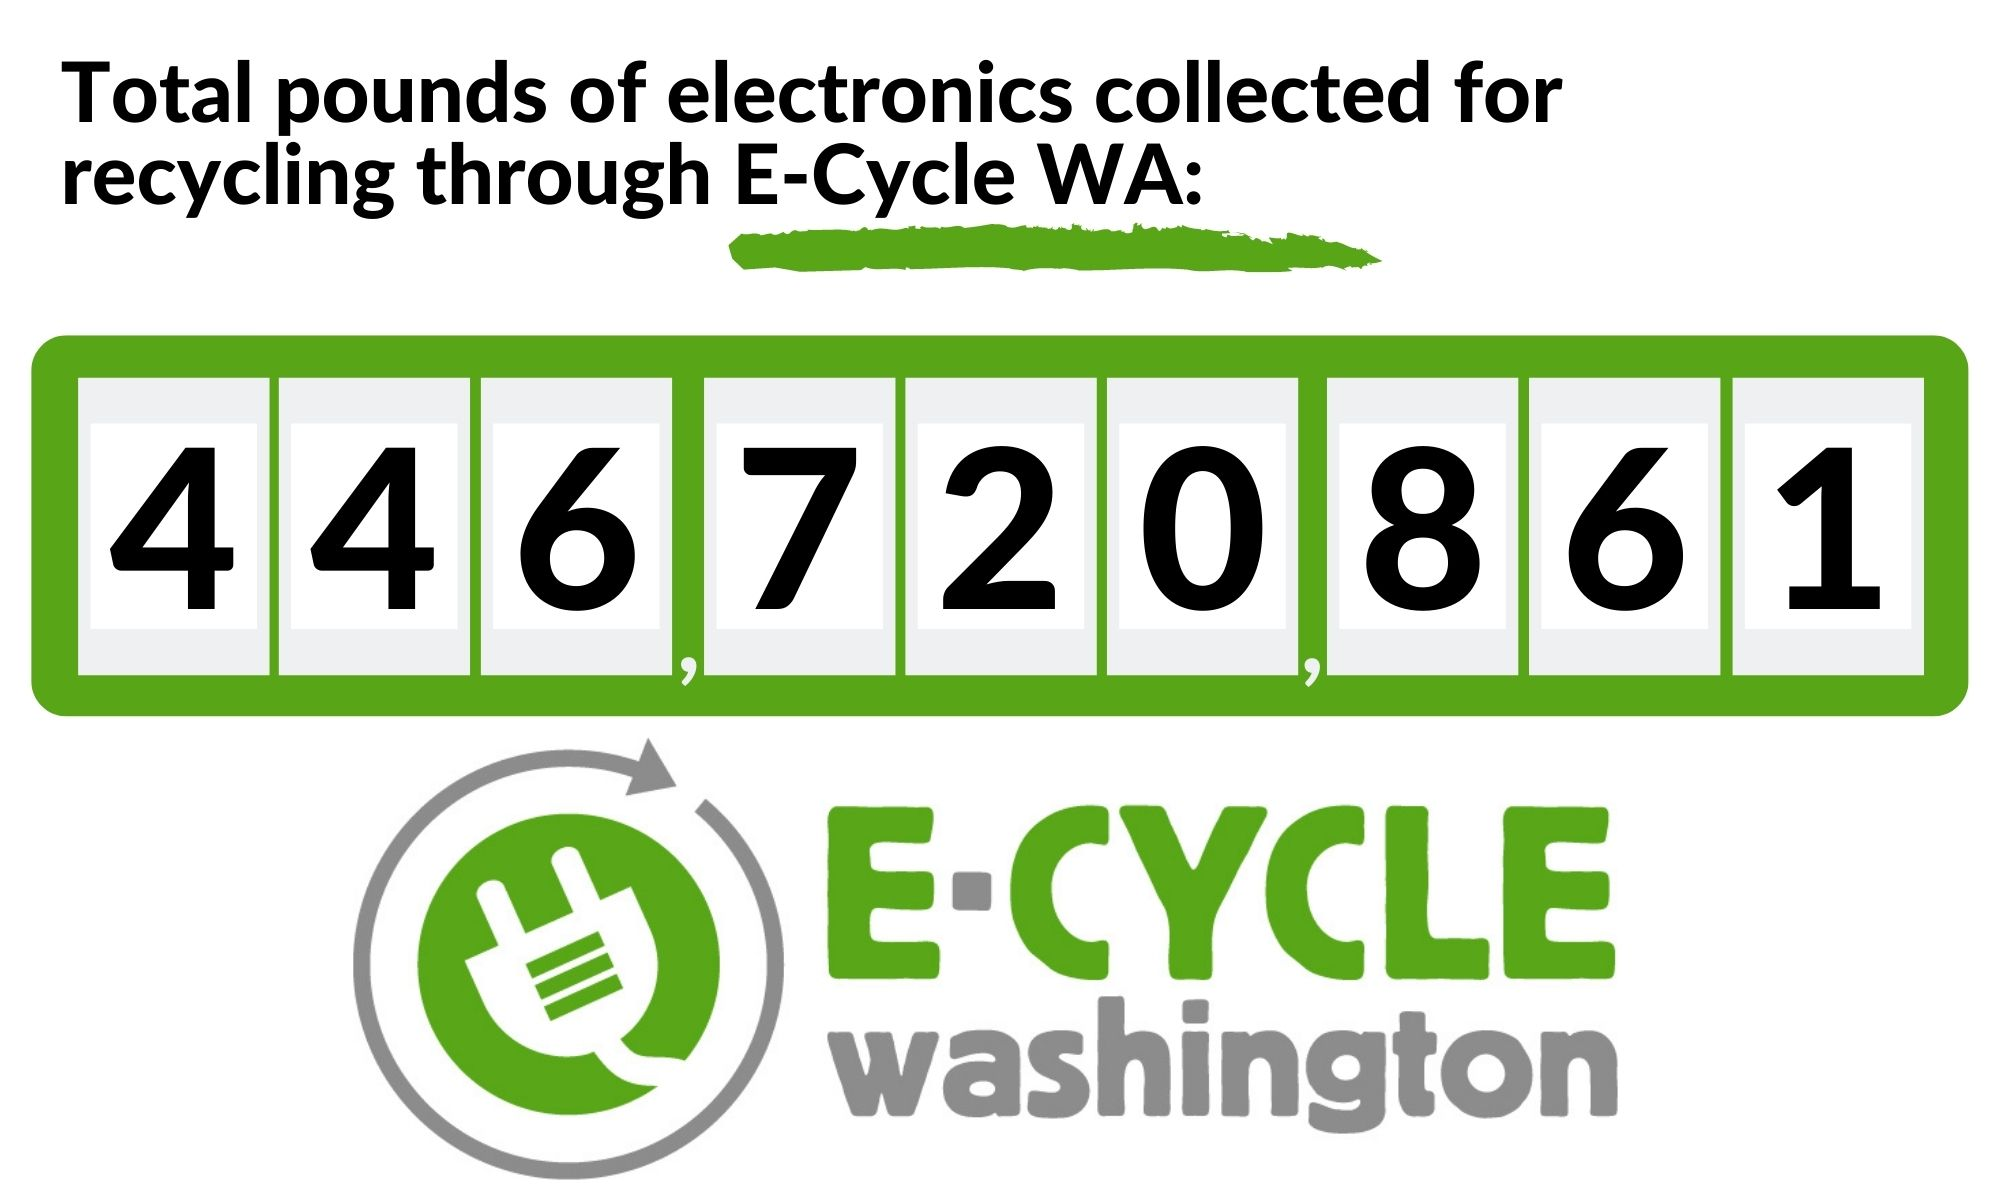 E-Cycle Washington has collected a total of 419,962,778 pounds of electronic material for recycling.